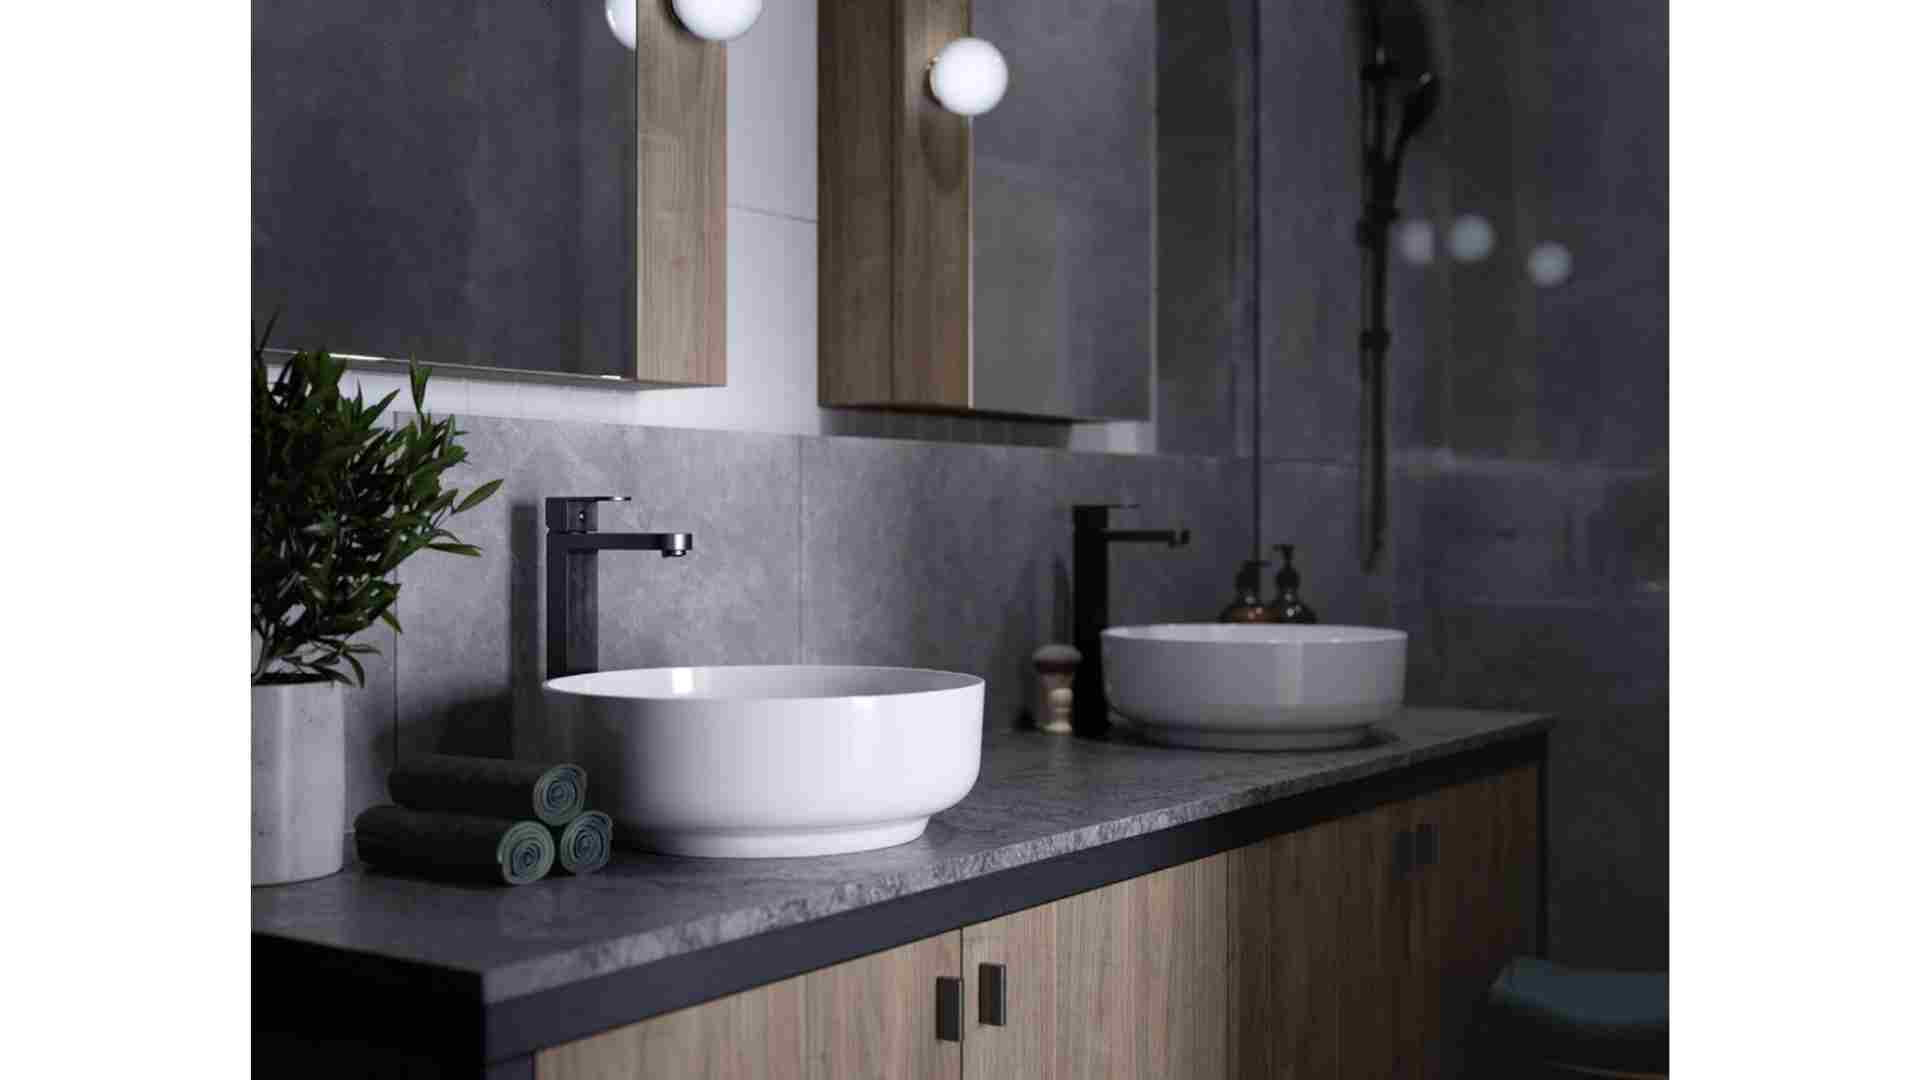 His and hers round white bowl sink, grey marble countertop, rectangle mirror